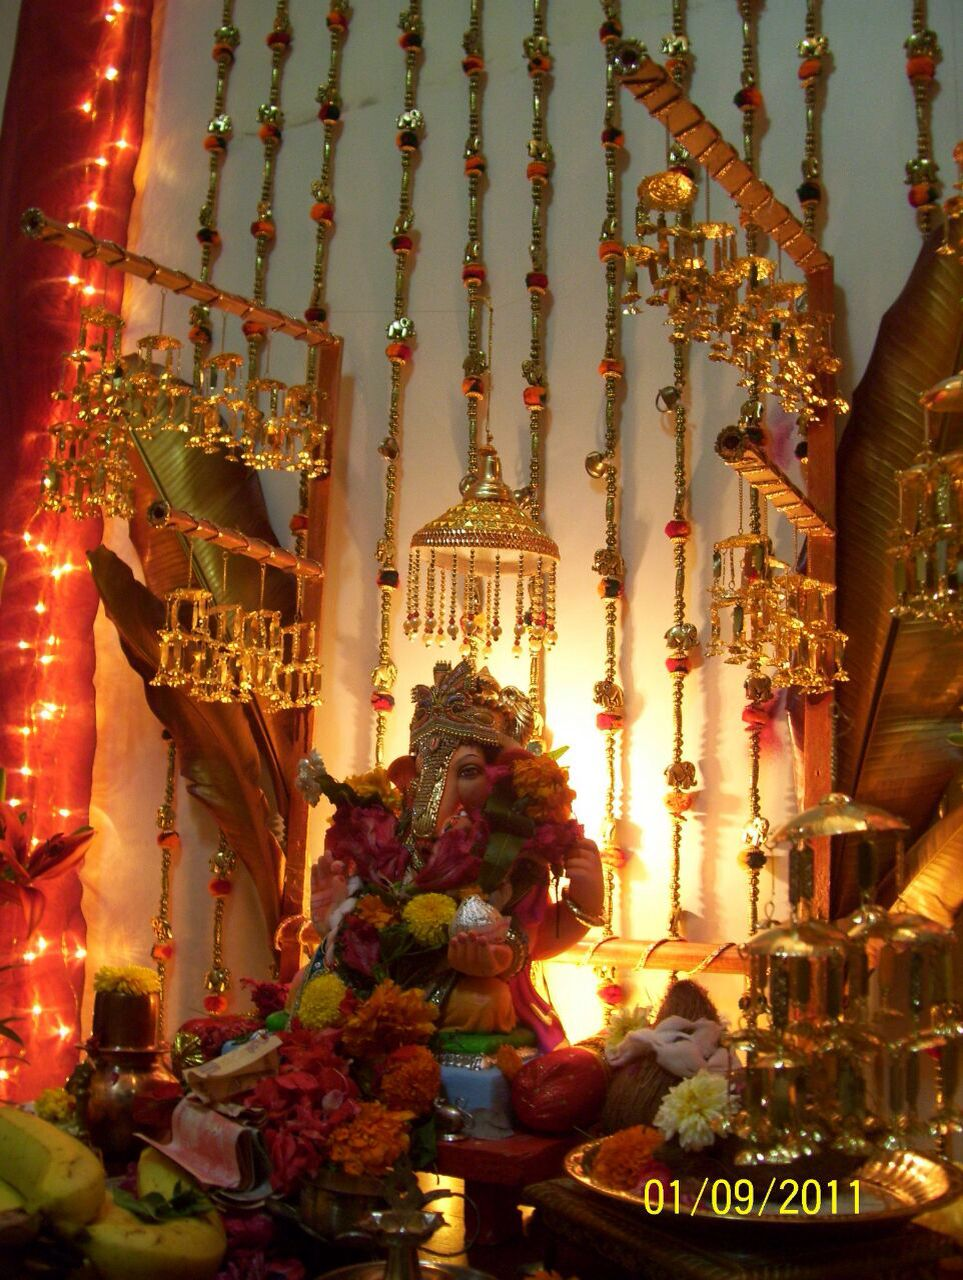 Decoration for ganpati indian customs pinterest for Ganapati decorations home